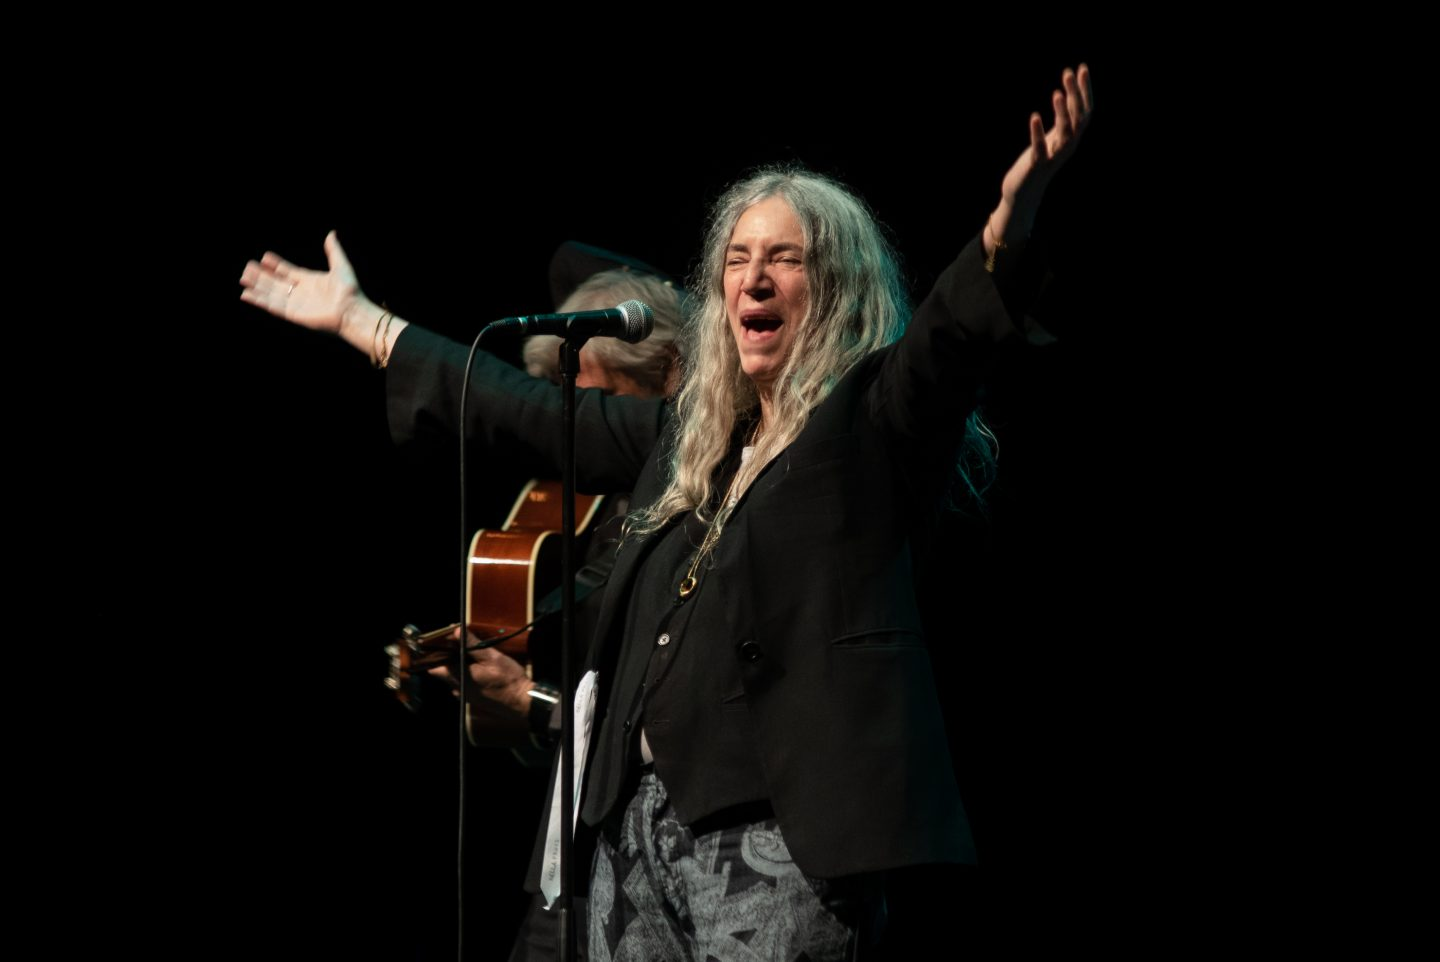 Patti Smith on Stage Festival of Voice 2018